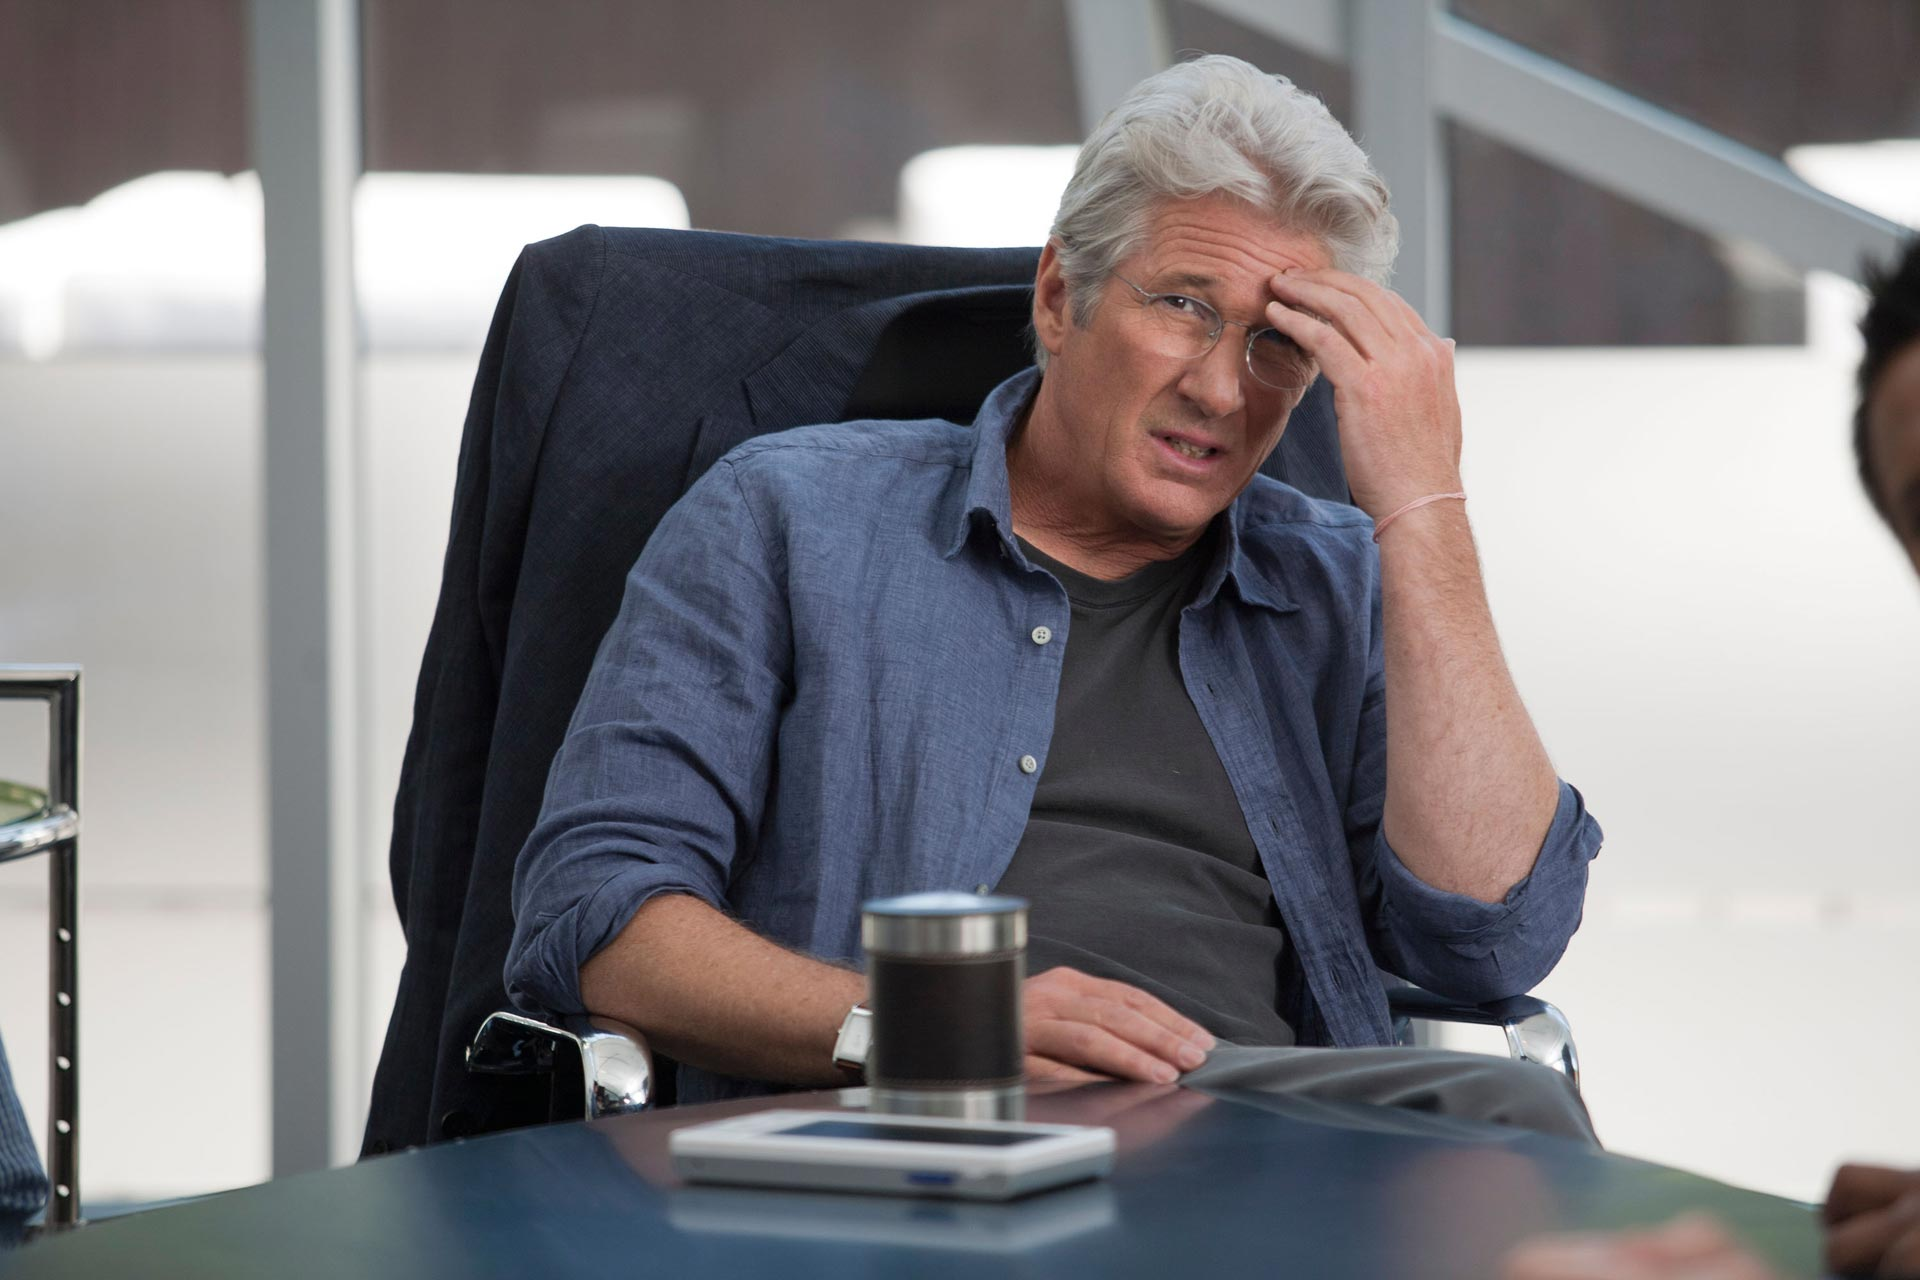 What dirt do they have on you, Mr. Gere? (Relativity Media)